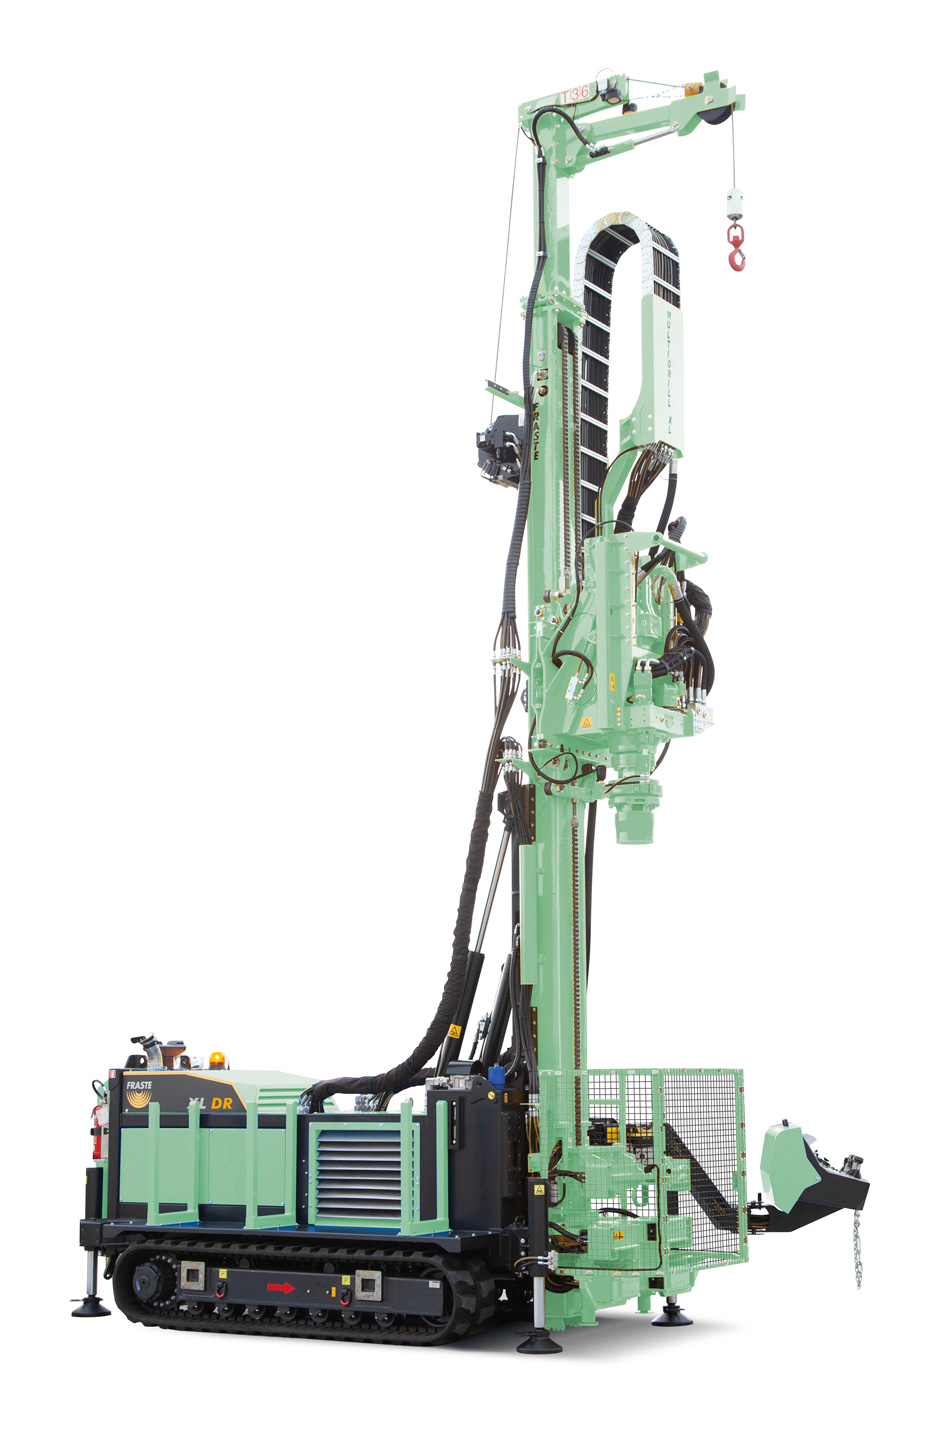 MULTIDRILL XL DR - Fraste Spa - mobile drilling rigs and